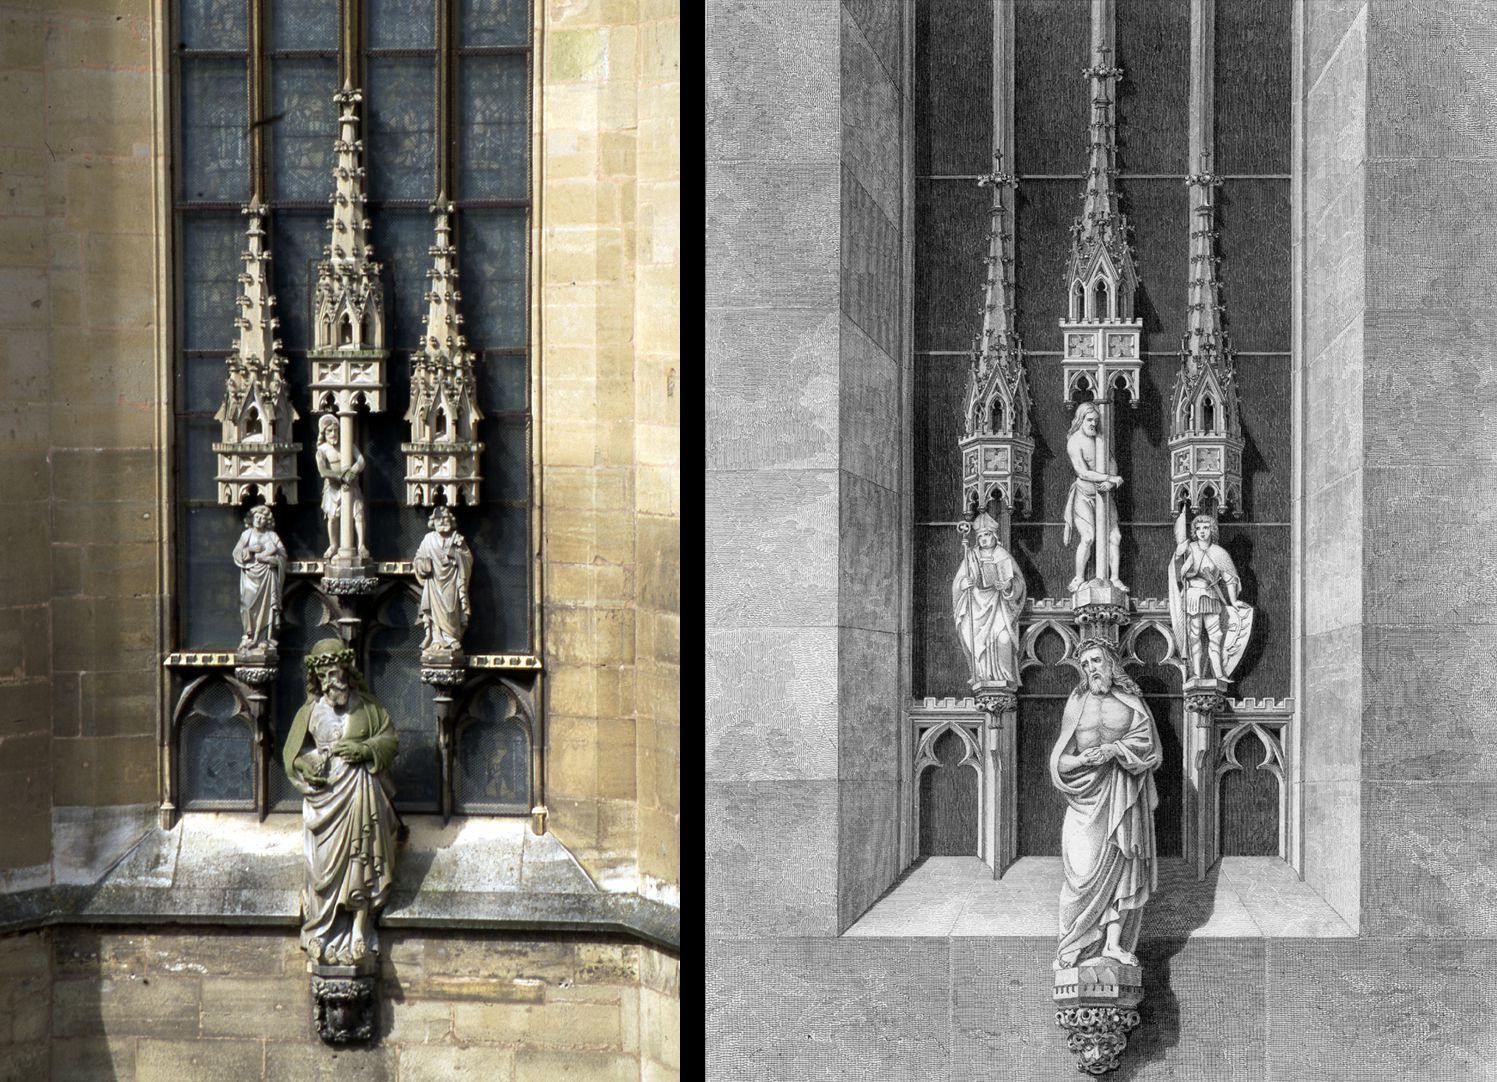 Man of Sorrows with triad (group of three) (Rothenburg on the Tauber) L: Photo, r.: Engraving of Heideloff´s ornamentation in the Middle Ages. The pinnacles are not typically Gothic as is the style of the figures. Mainly Heideloff here wants to present his own concept of Gothic Revival as truly medieval.